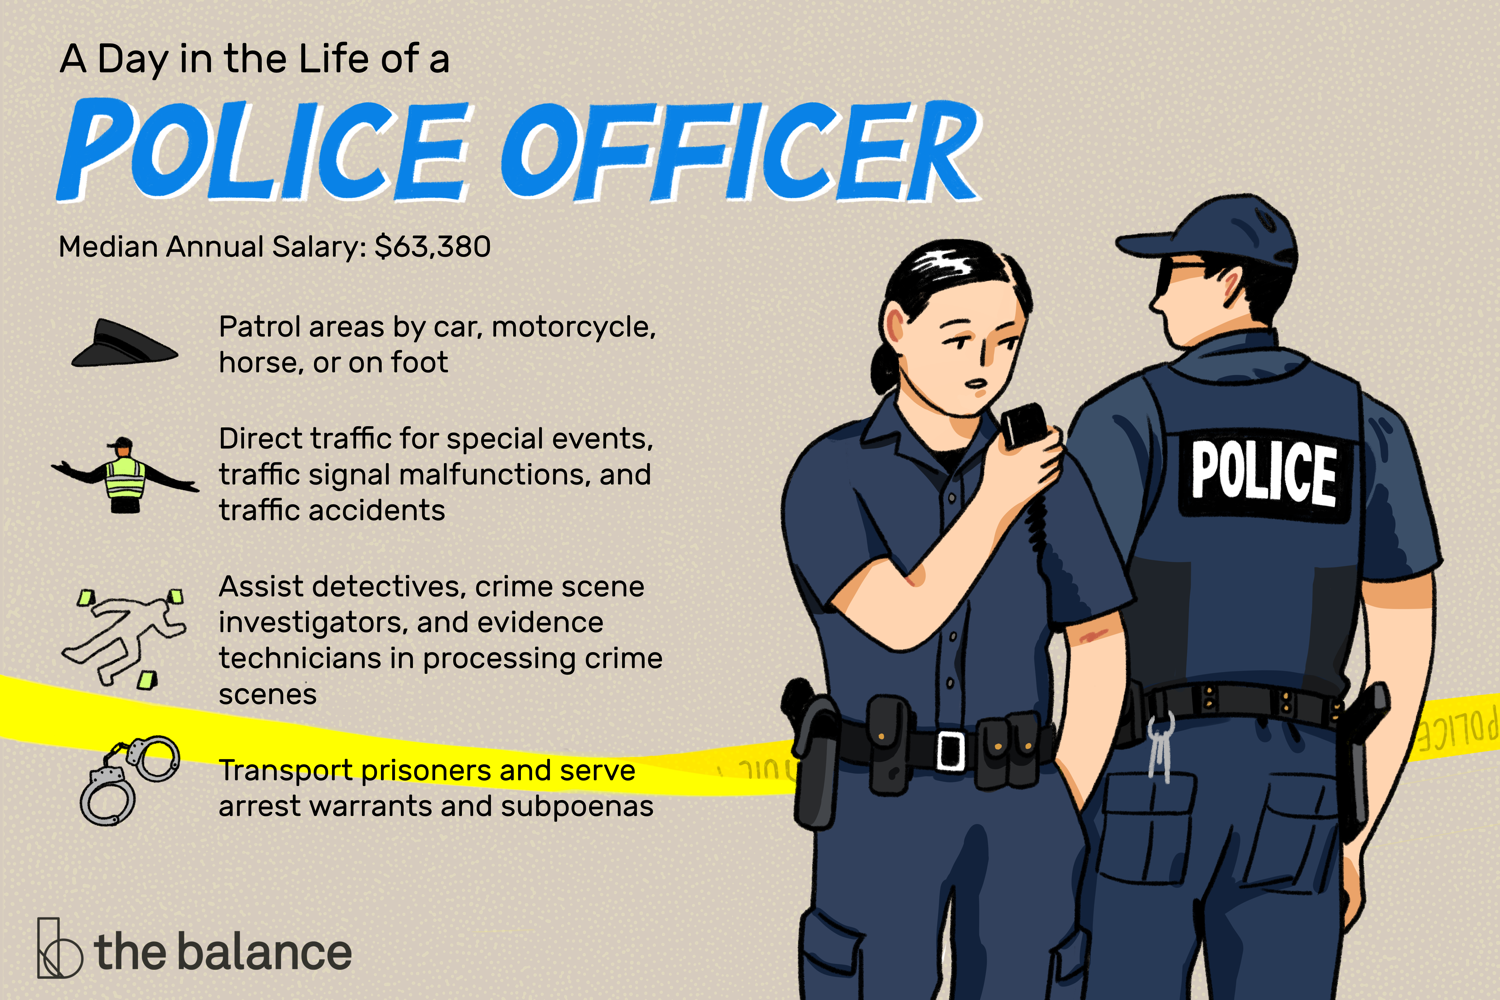 Police Officers Protect The Public By Investigating Crimes And Apprehending Criminals Learn Police Officer Jobs Police Officer Police Officer Job Description